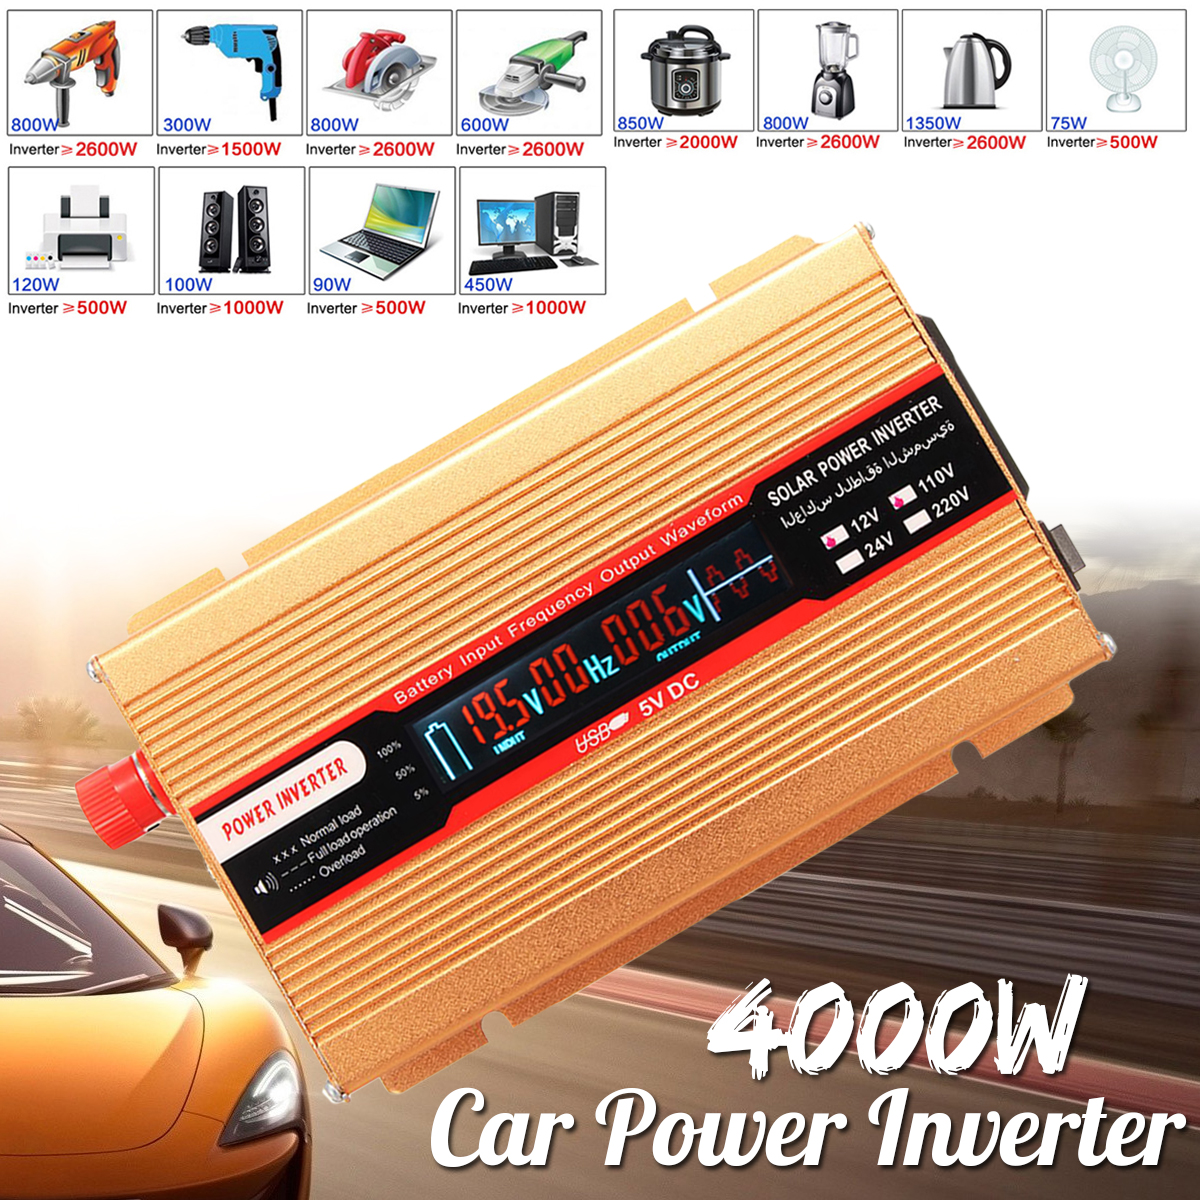 Voltage Transformer PEAK 4000W 12/24V To AC 220/110V Car Power Inverter USB Modified Sine Wave Converter for Various Appliances peak 4000w 12 24v to ac 220 110v car power inverter usb modified sine wave converter voltage transformer for various appliances